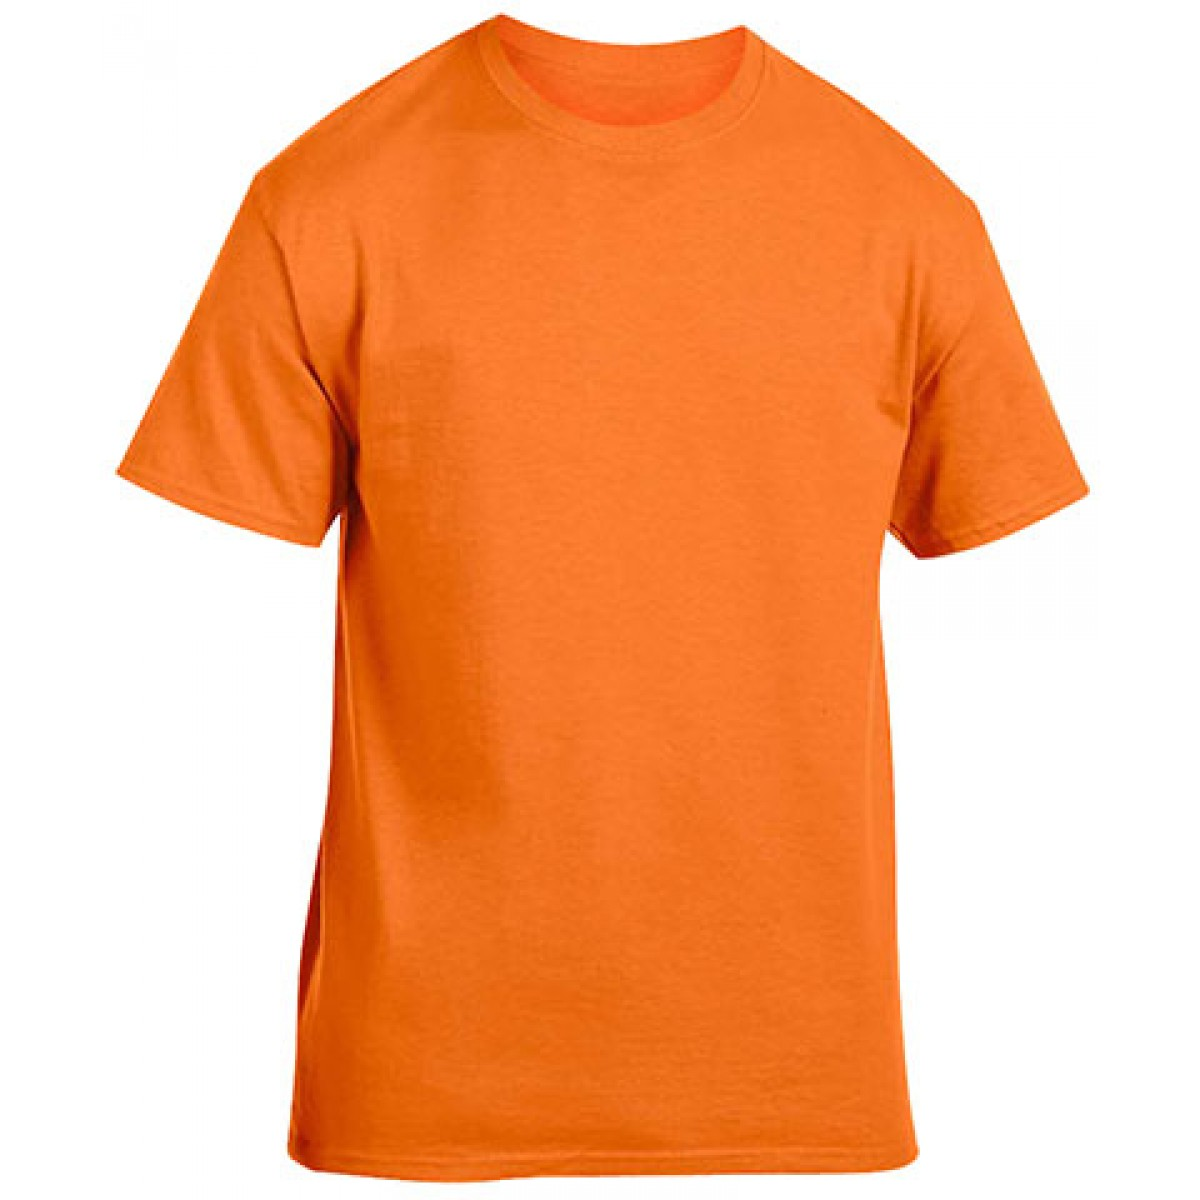 Cotton Short Sleeve T-Shirt-Safety Orange-S